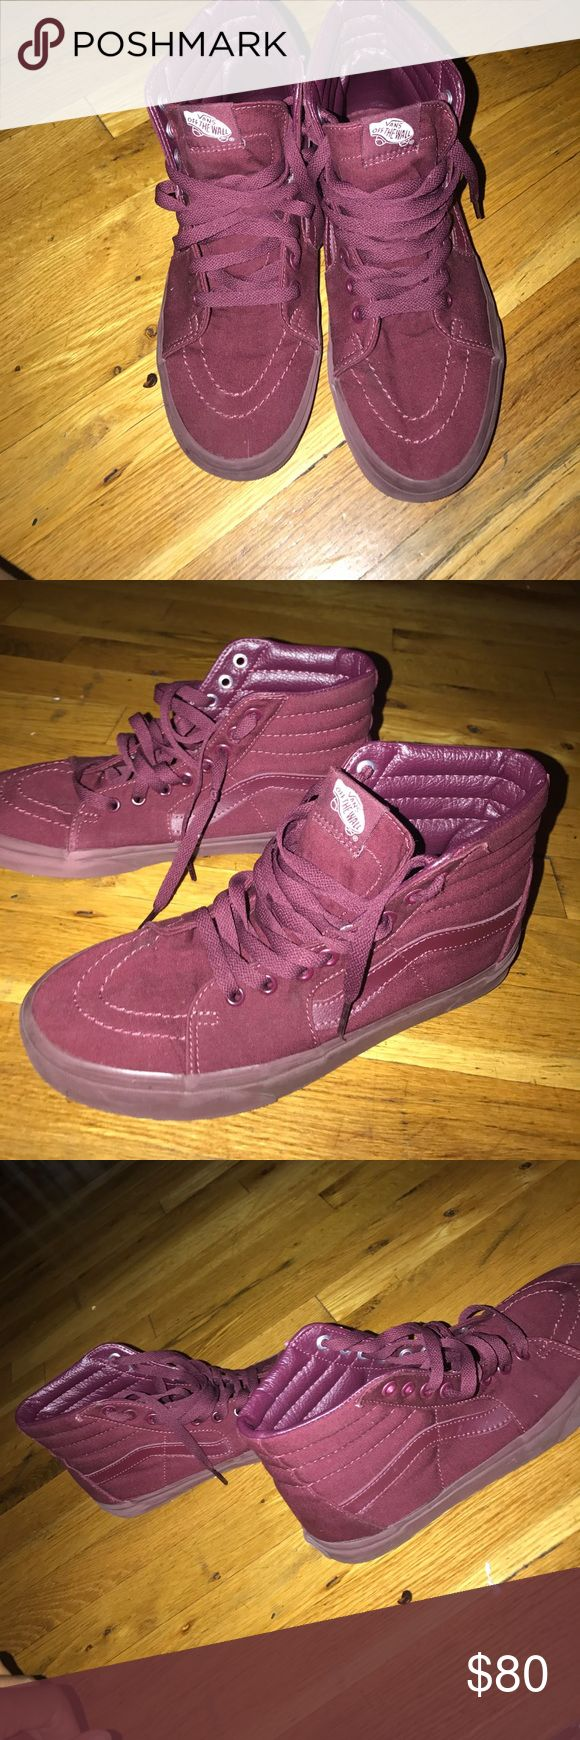 Burgundy Vans Sk8 Hi Skate Shoe hi-top design constructed with durable canvas uppers, signature leather side stripe, and clean, monochrome colorways.  You may contact me at 917-683-0396. TEXT ONLY and yes i do offers and deals. my price can go down lower, please buy my family need the money. AND YES THESE ARE STILL AVAILABLE Vans Shoes Sneakers